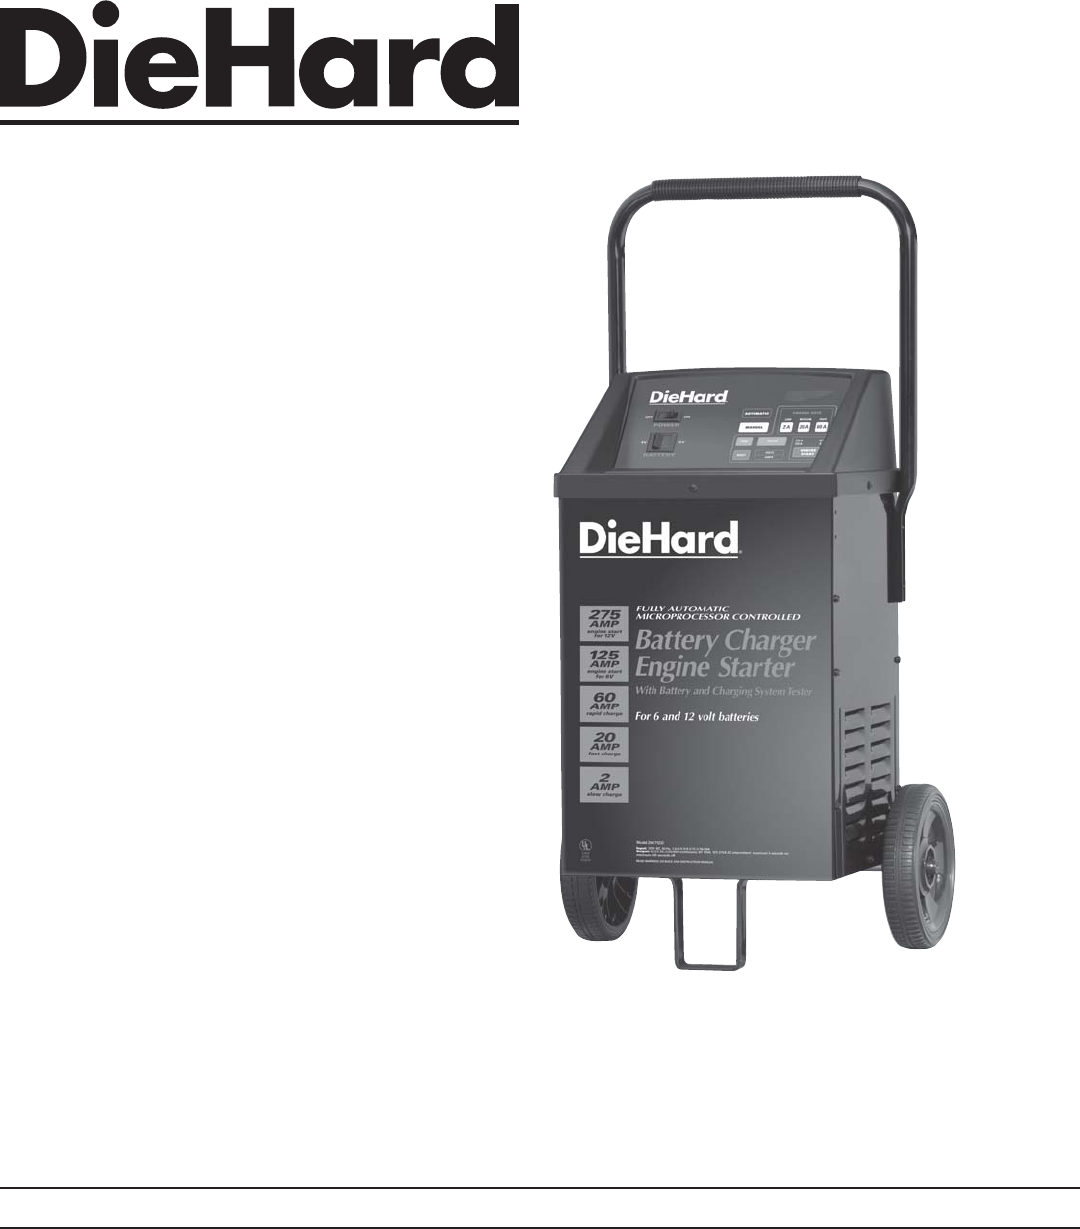 Sears 20071232 Owner Manual Die Hard Battery Charger Wiring Diagram Roebuck And Co Hoffman Estates Il 60179 Usa